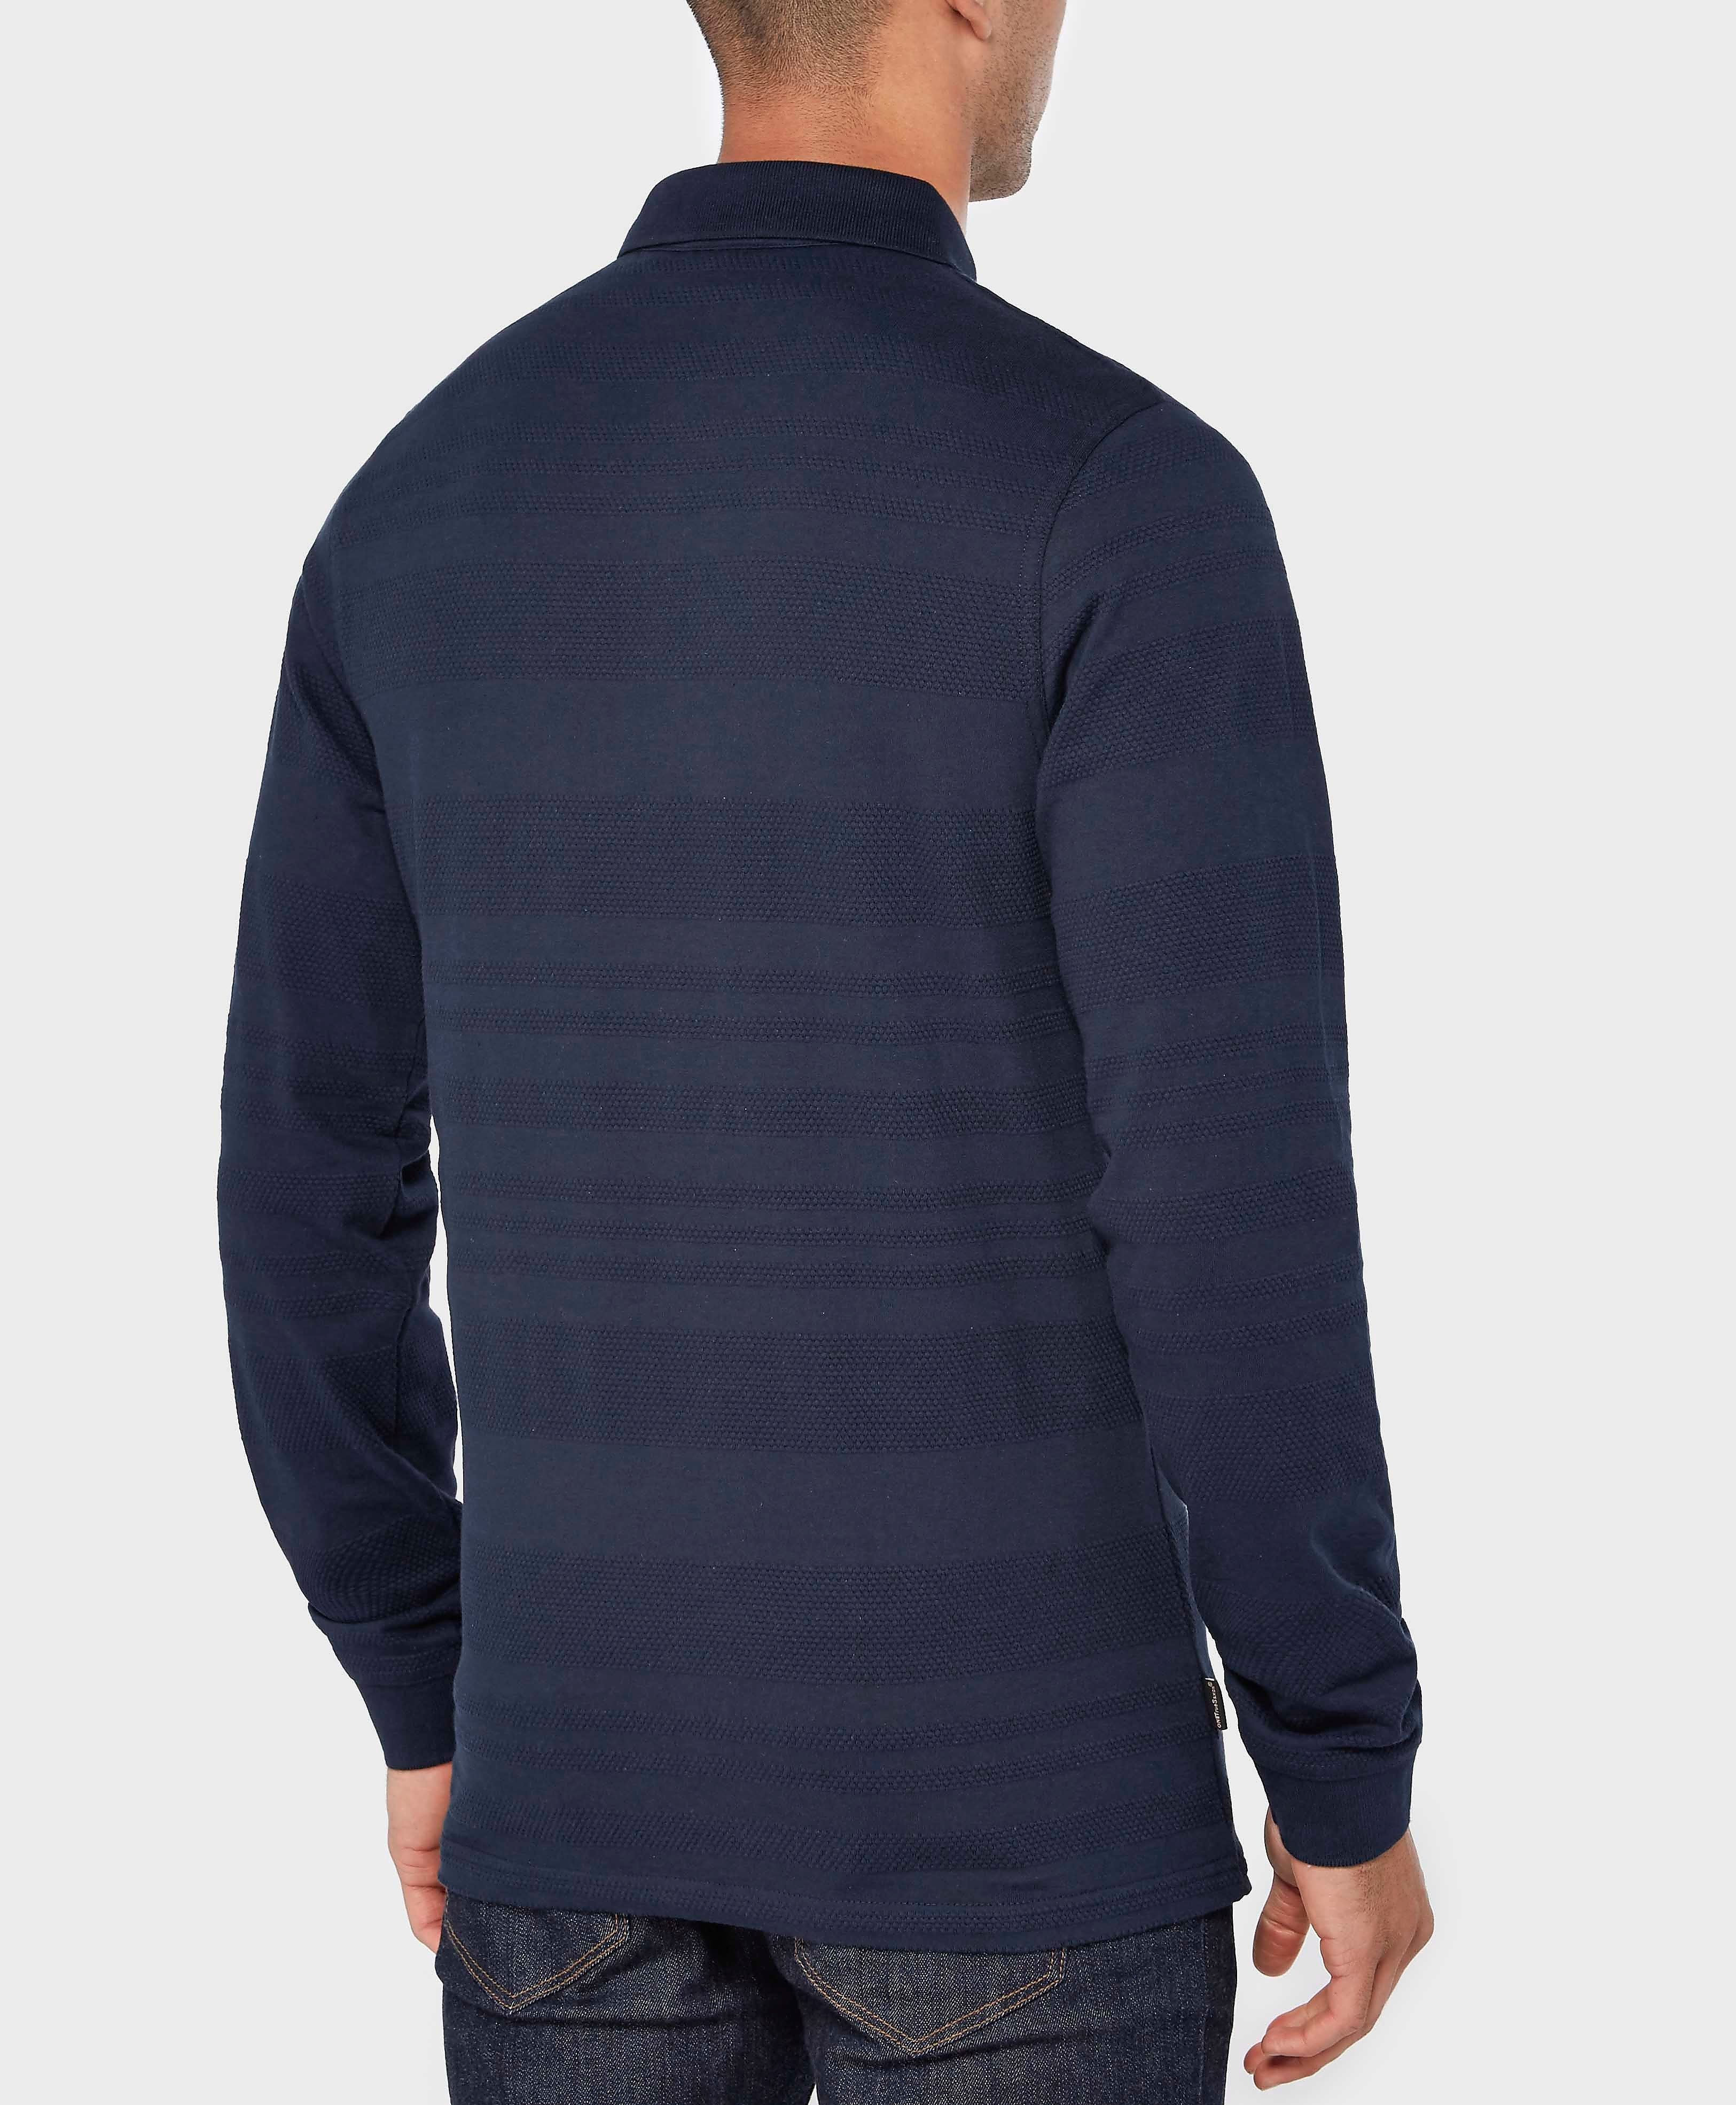 One True Saxon Jack Long Sleeve Polo Shirt - Exclusive